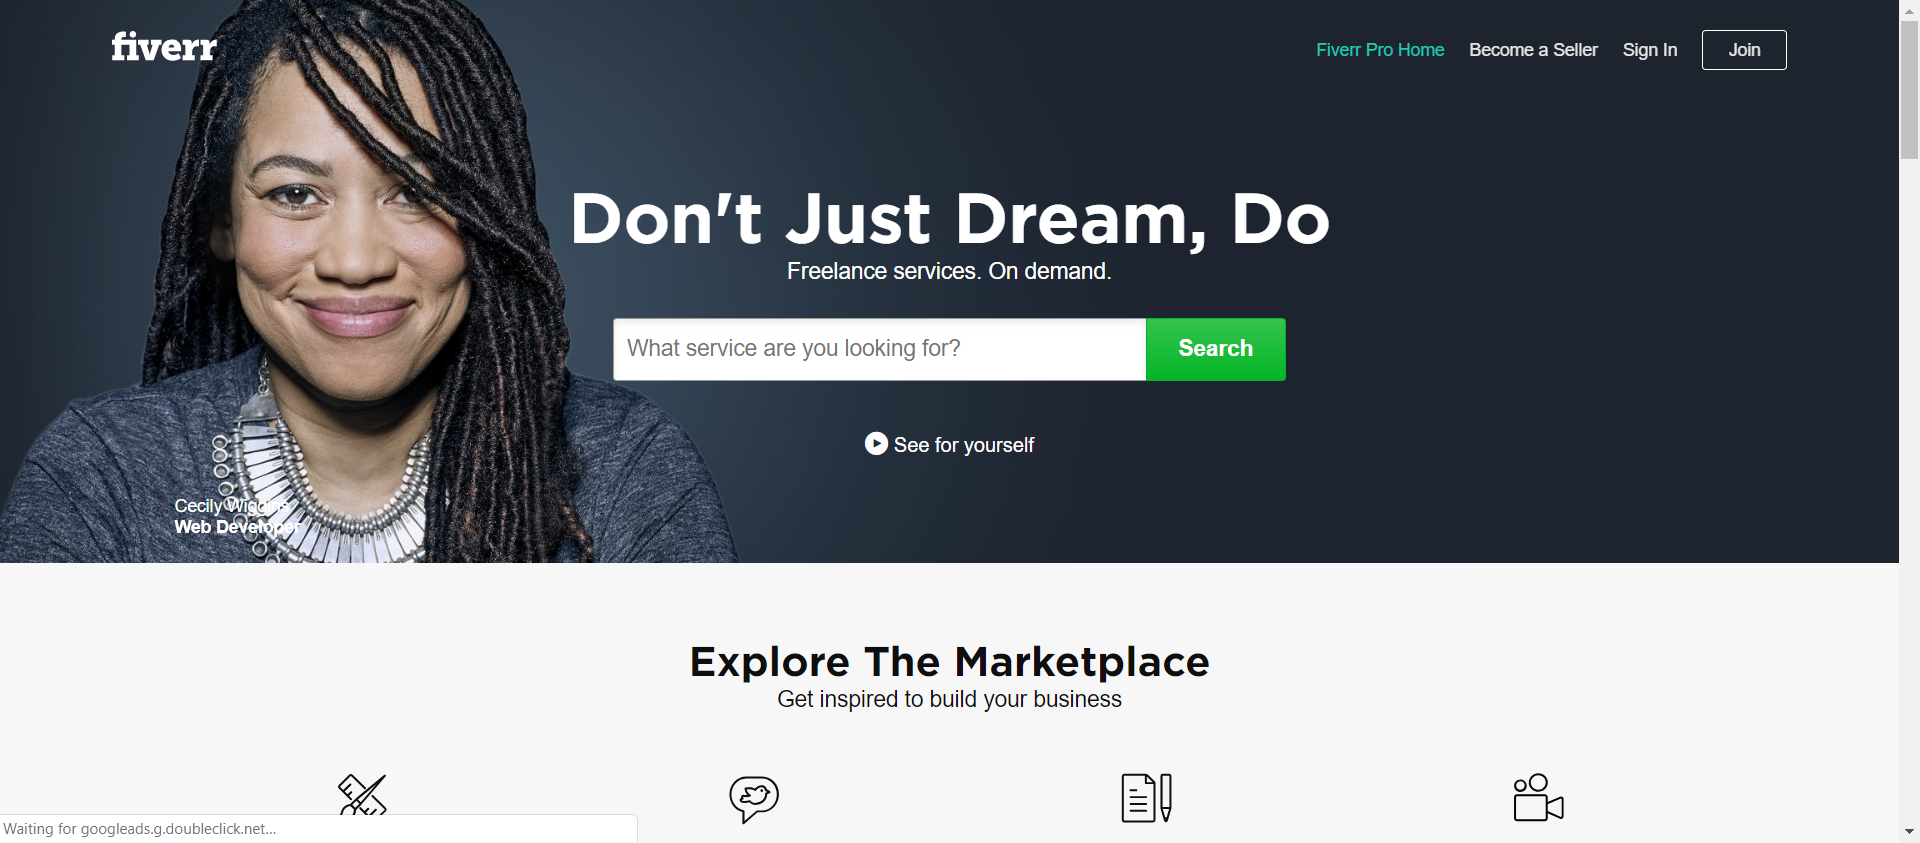 Fiverr website image